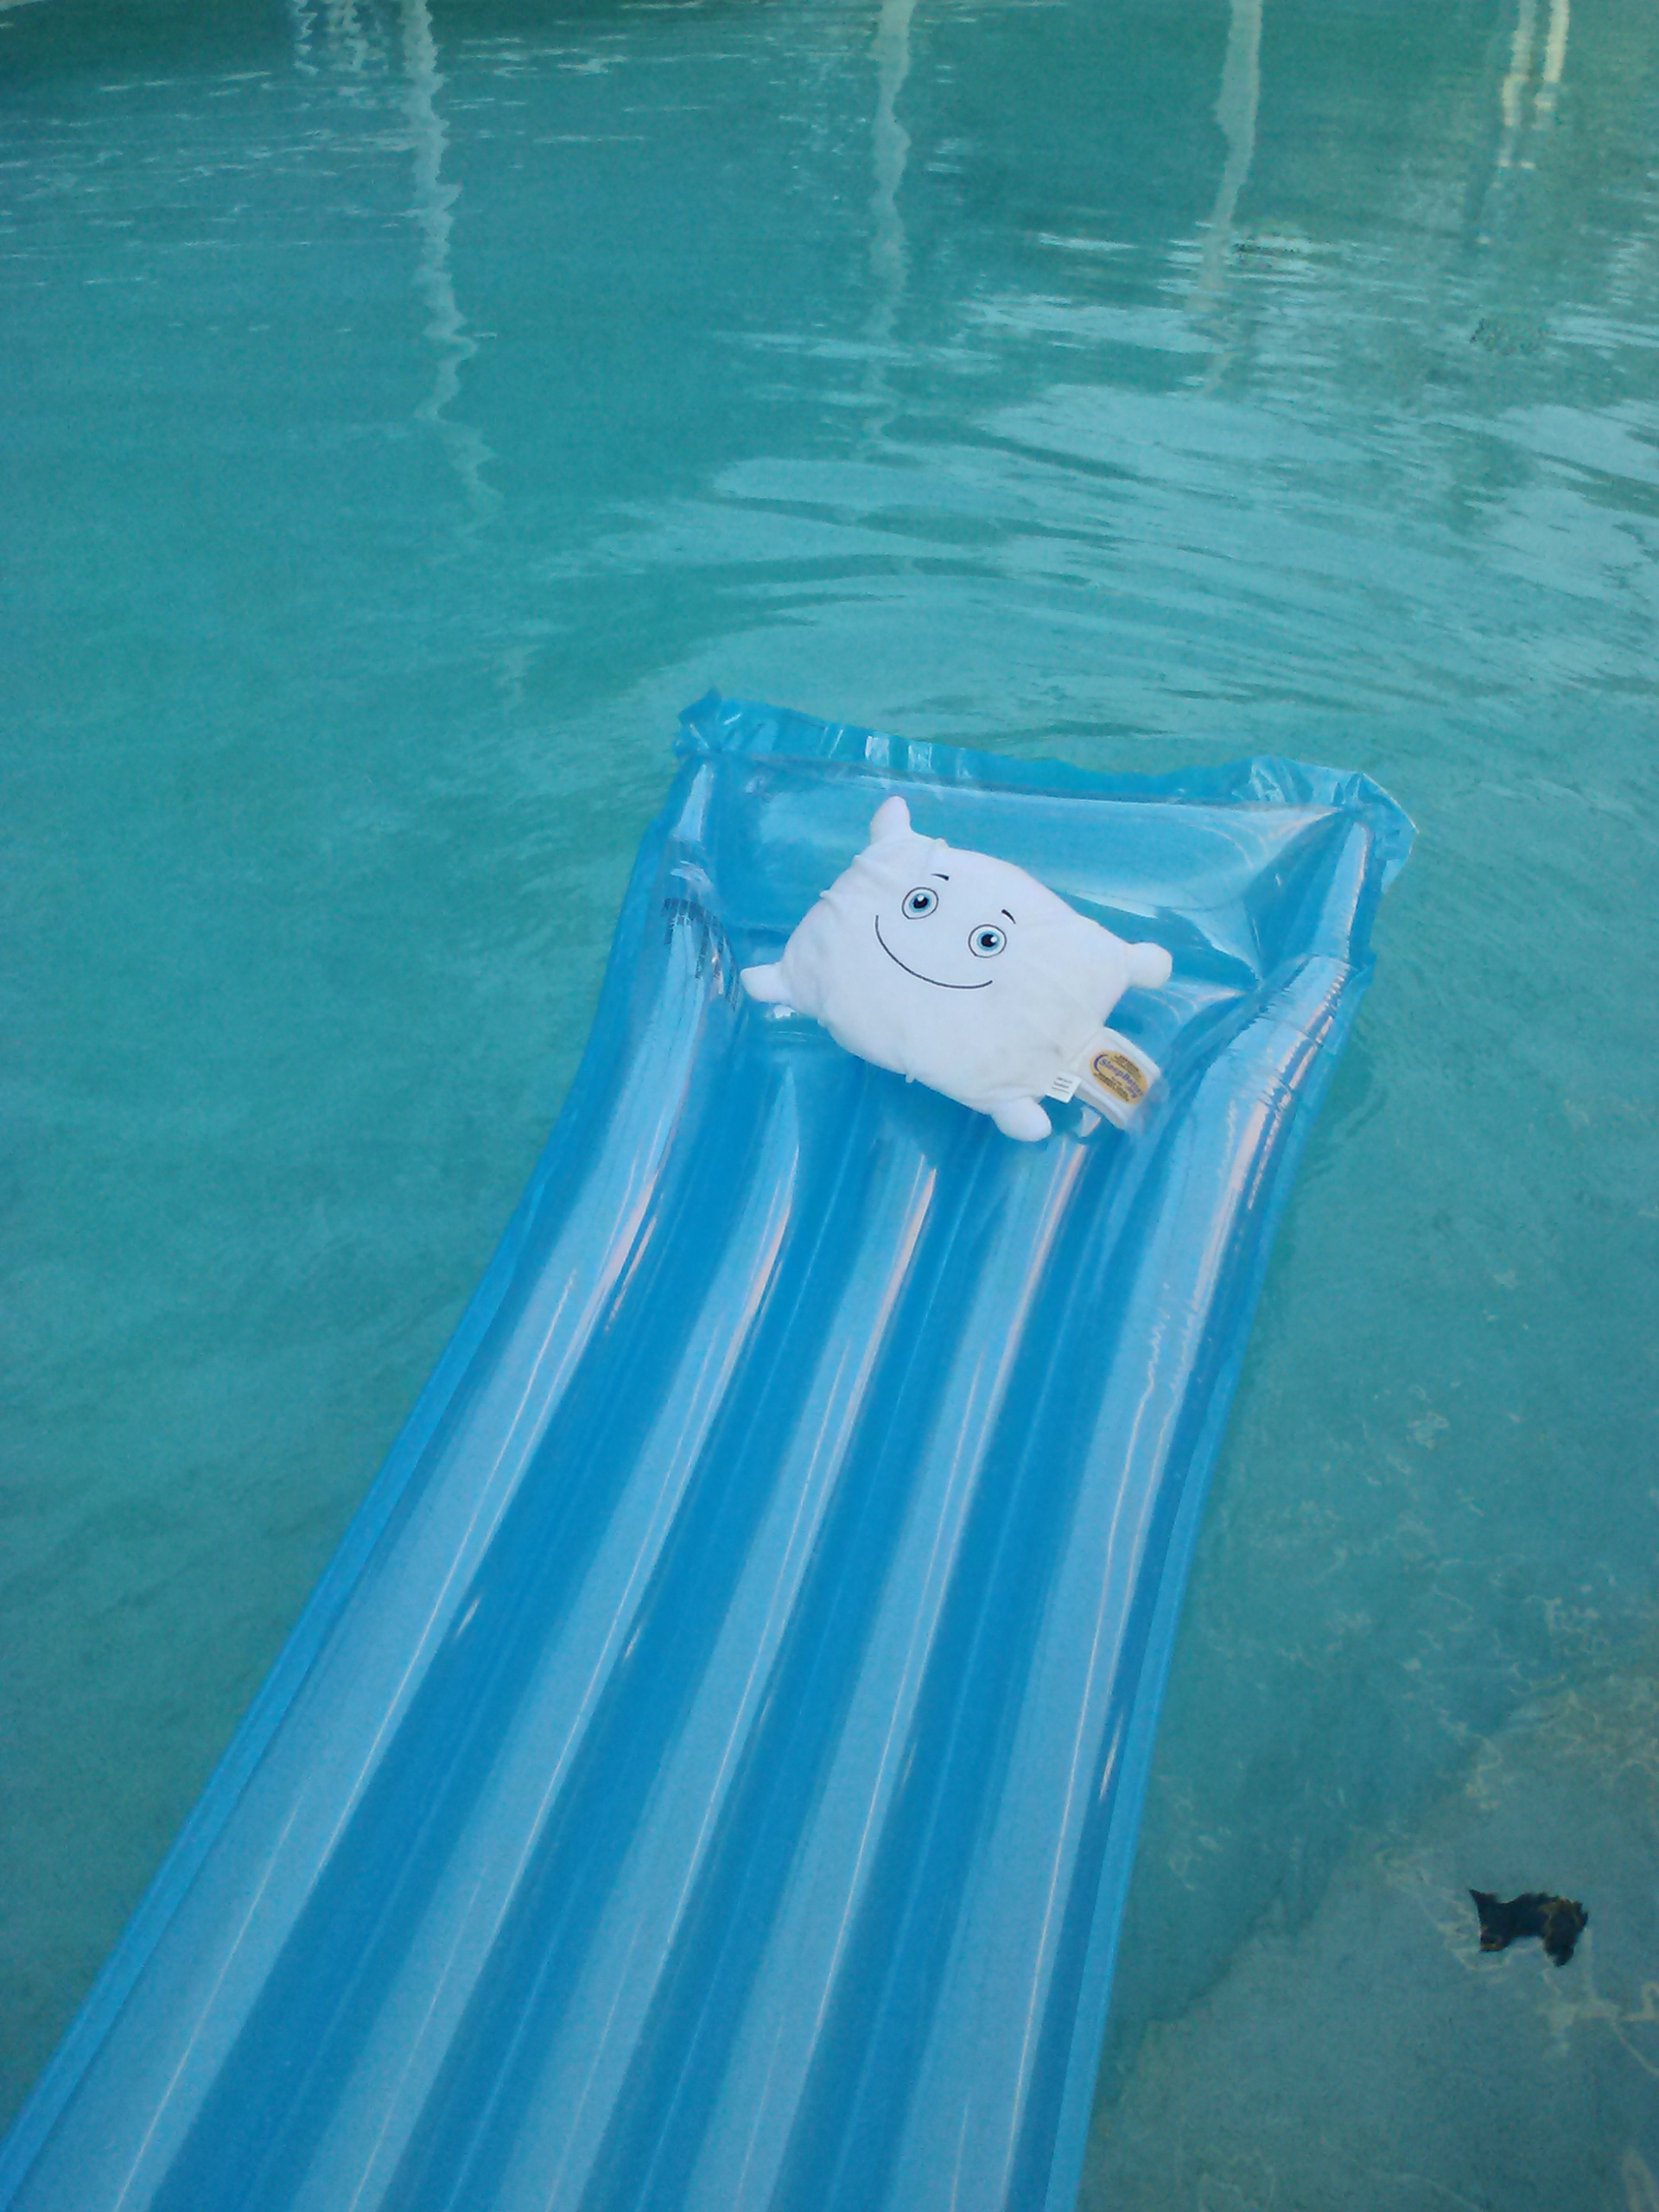 McStuffy is enjoying some time floating around the pool